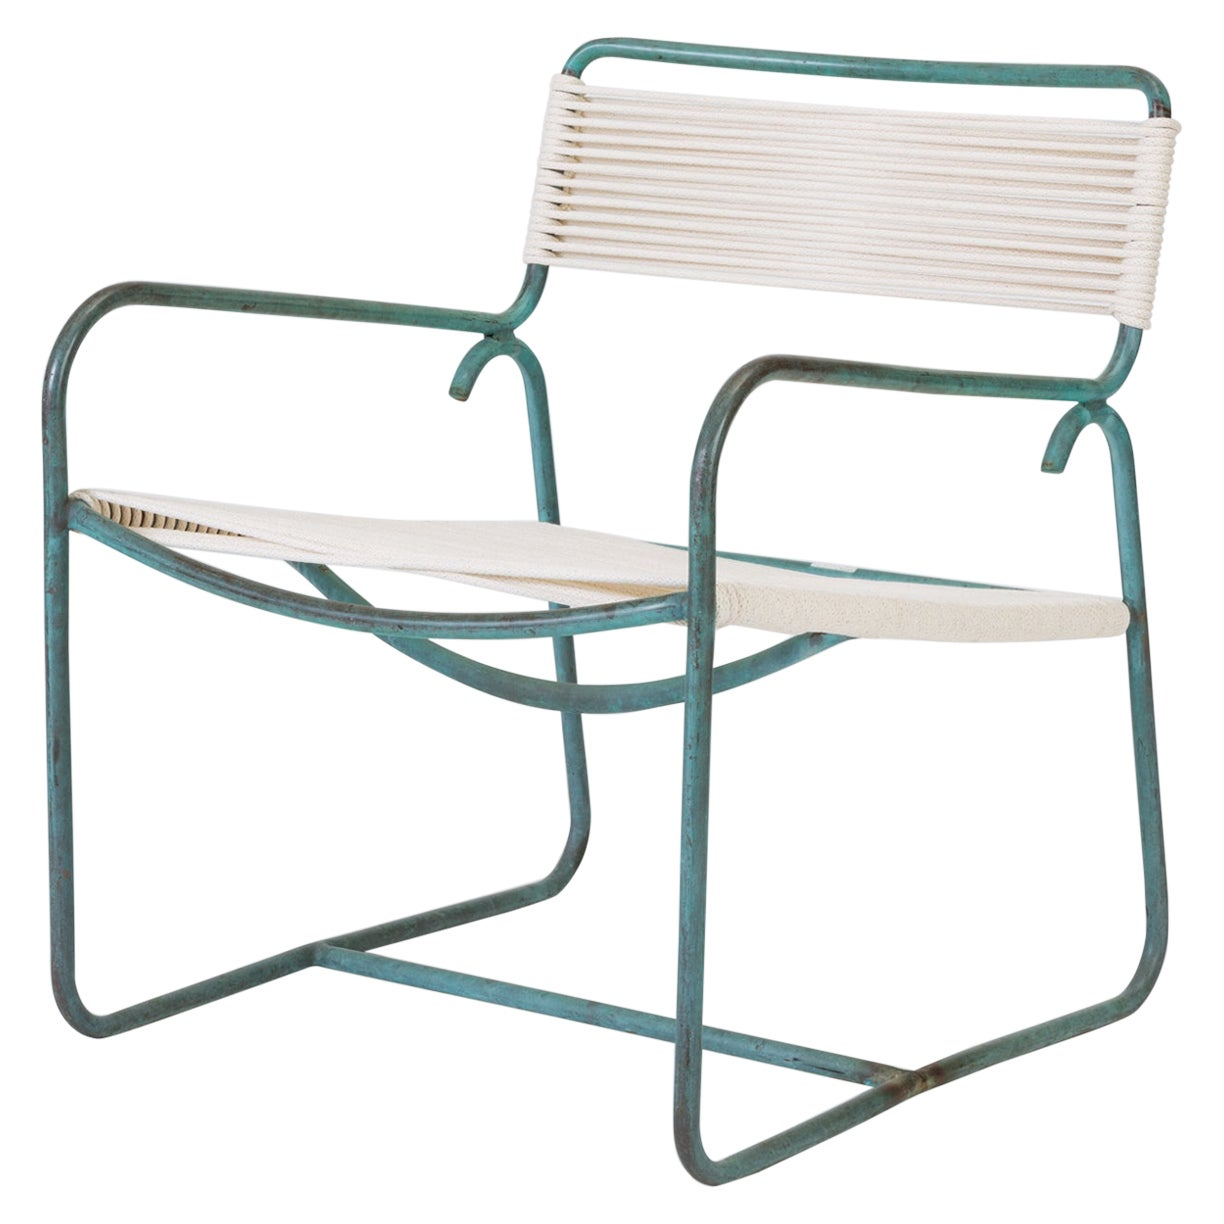 Wide Lounge Chair by Walter Lamb for Brown Jordan